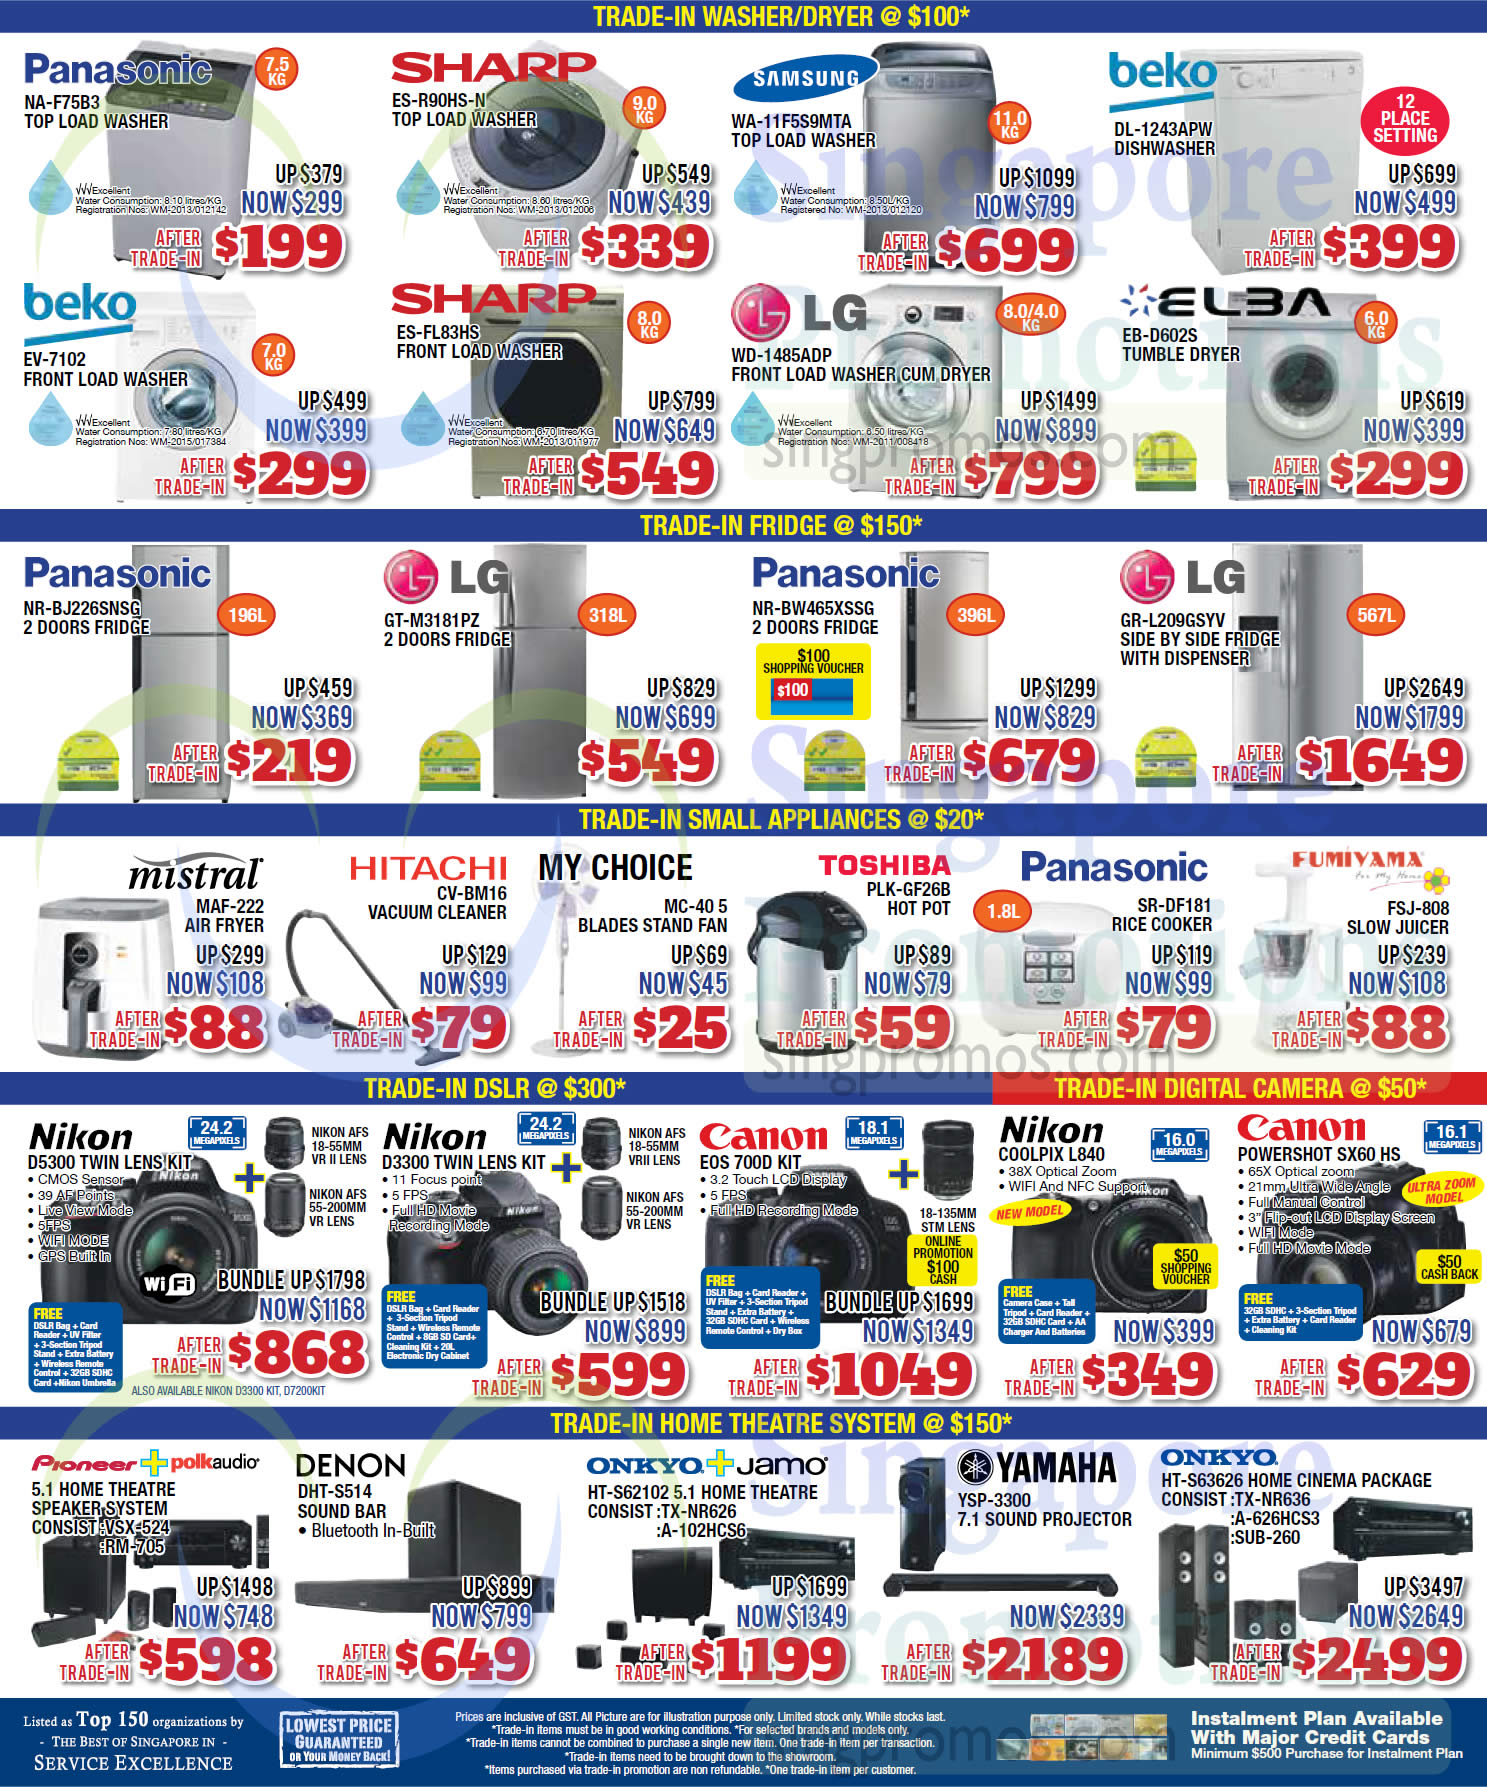 Panasonic NA-F75B3 Washer, Sharp ES-R90HS-N Washer, Samsung WA-11F5S9MTA Washer, Beko DL-1243APW Dishwasher, Beko EV-7102 Washer, Sharp ES-FL83HS Washer, LG WD-1485ADP Washer, Elba EB-D602S Dryer, Panasonic NR-BJ226SNSG Fridge, LG GT-M3181PZ Fridge, Panasonic NR-BW465XSSG Fridge, LG GR-L209GSYV Fridge, Mistral MAF-222 Air Fryer, Hitachi CV-BM16 Vacuum Cleaner, My Choice MC-40 5 Fan, Toshiba PLK-GF26B Hot Pot, Panasonic SR-DF181 Rice Cooker, Fumiyama FSJ-808 Slow Juicer, Nikon D5300 DSLR Digital Camera, Nikon D3300 DSLR Digital Camera, Canon EOS700D DSLR Digital Camera, Nikon Coolpix L840 Digital Camera, Canon Powershot SX60 HS Digital Camera, Denon DHT-S514 Sound Bar, Yamaha YSP-3300 7.1 Sound Projector and Onkyo HT-S63626 Home Cinema Package